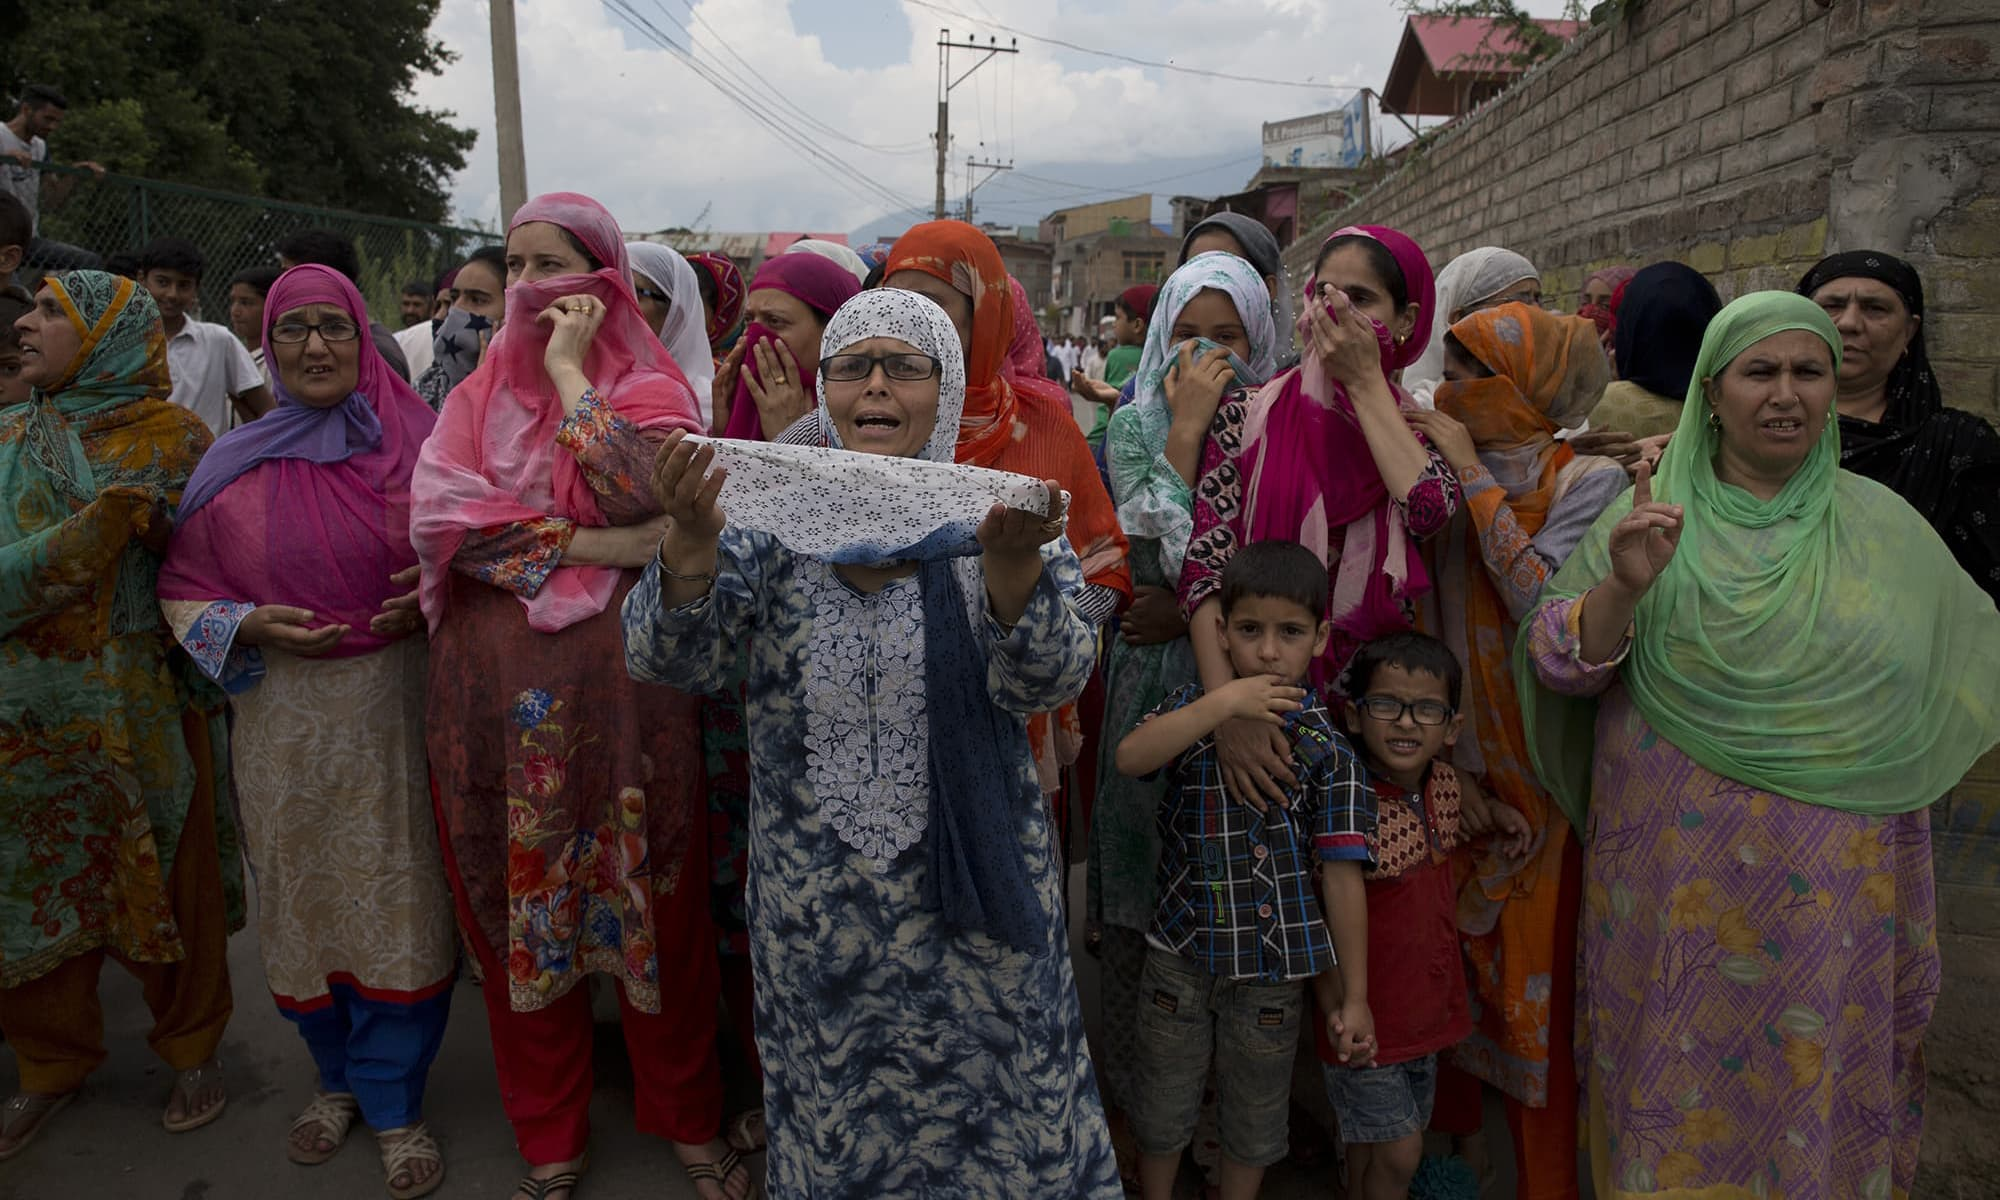 In this August 9 photo, a Kashmiri woman prays as she watches a protest march in Srinagar. — AP